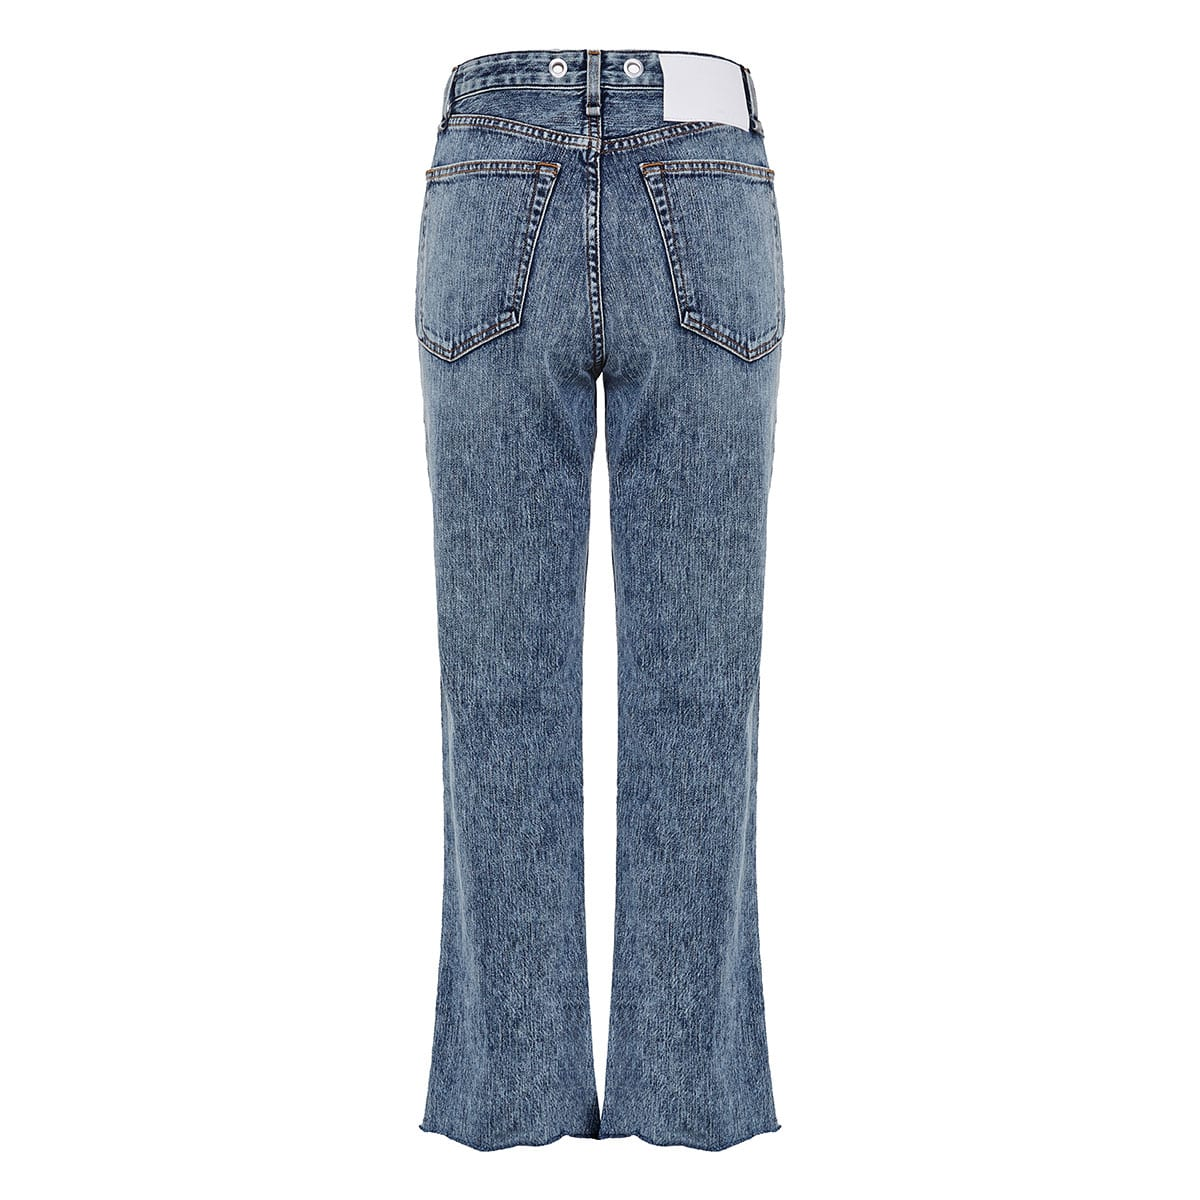 Ruth distressed cropped jeans